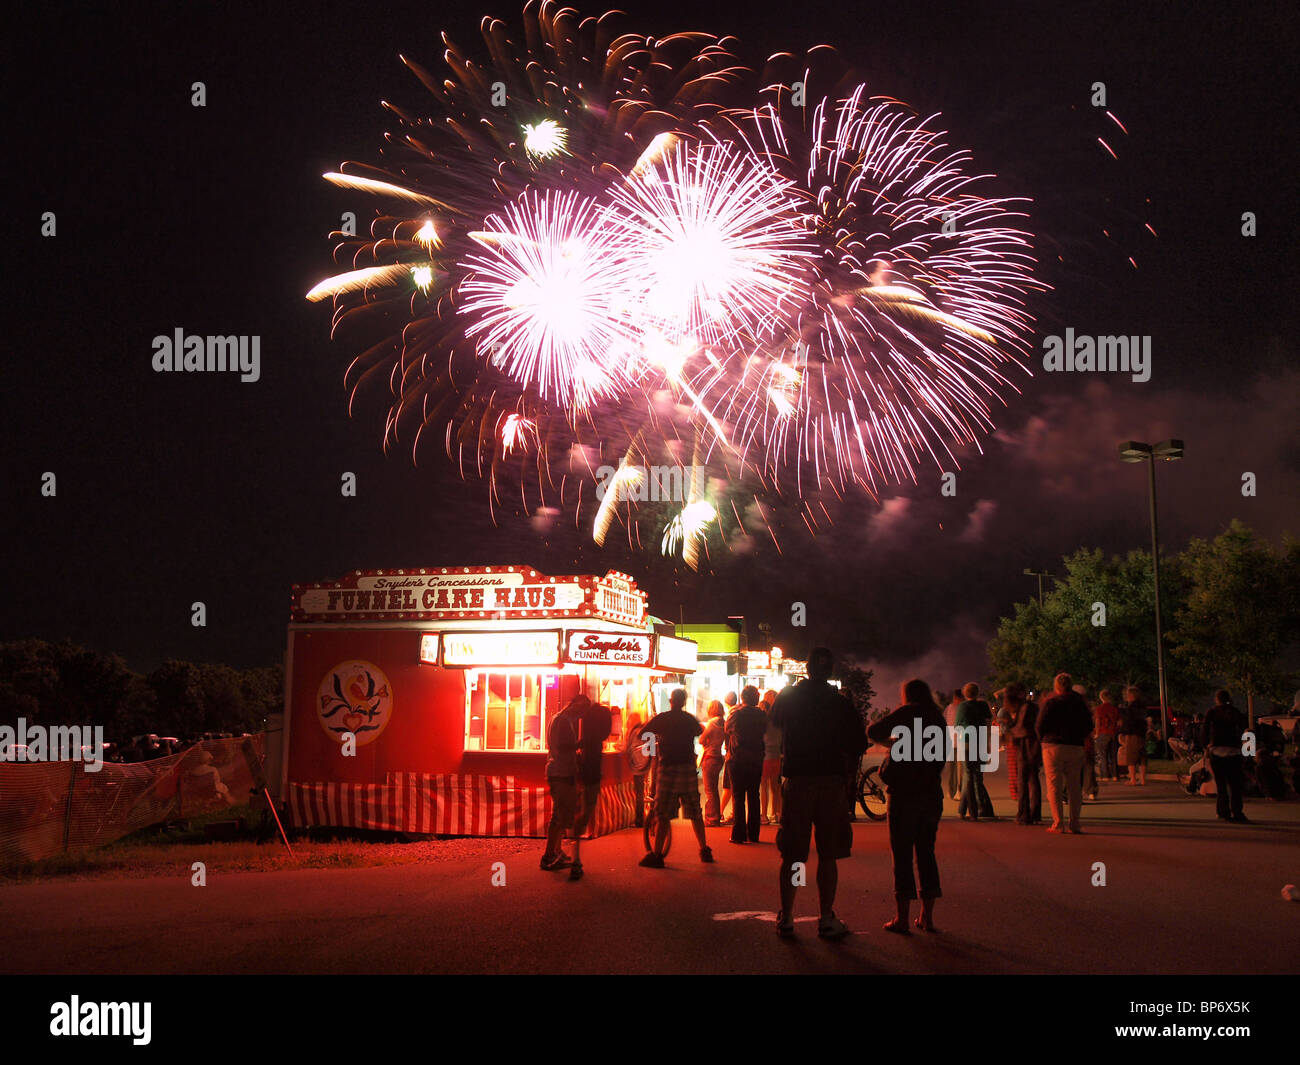 Editorial Photo - Pennsylvania Fireworks - Stock Image